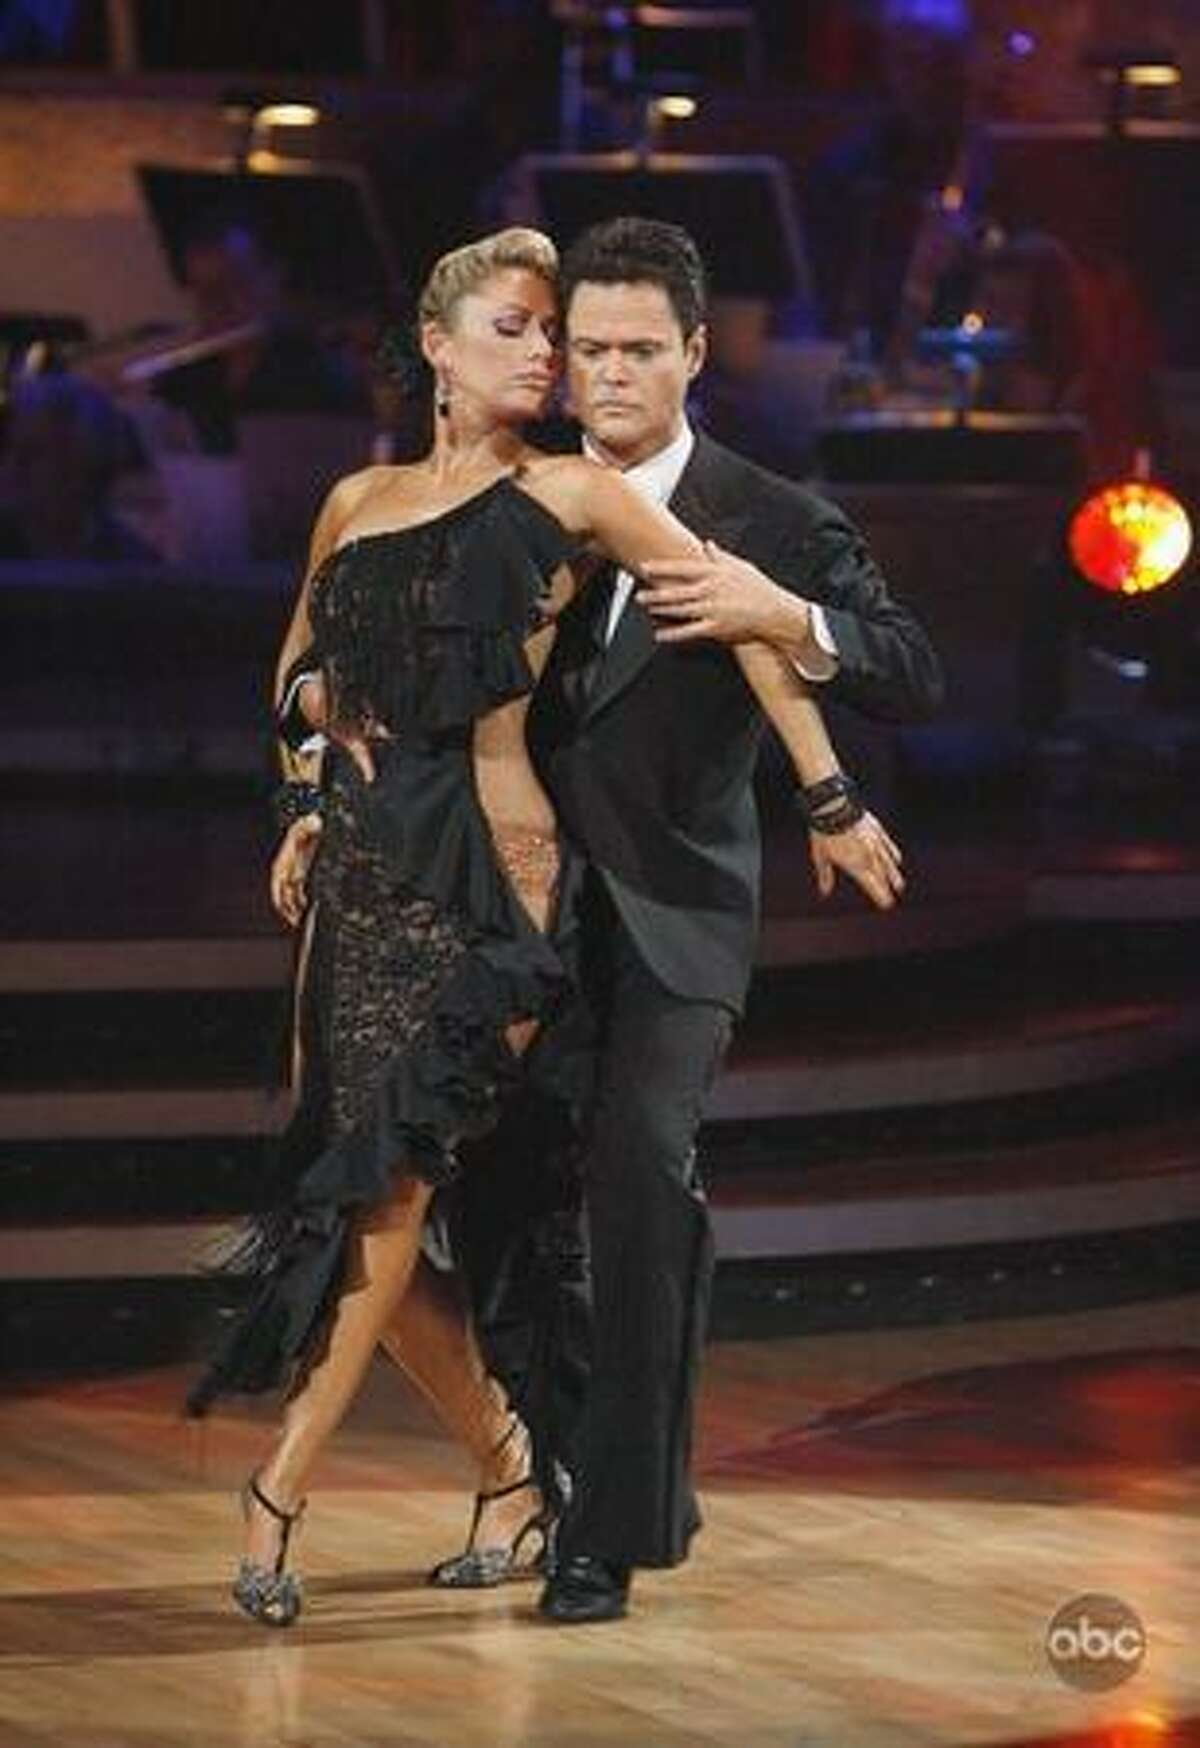 Singer Donny Osmond and professional dancer Kym Johnson.